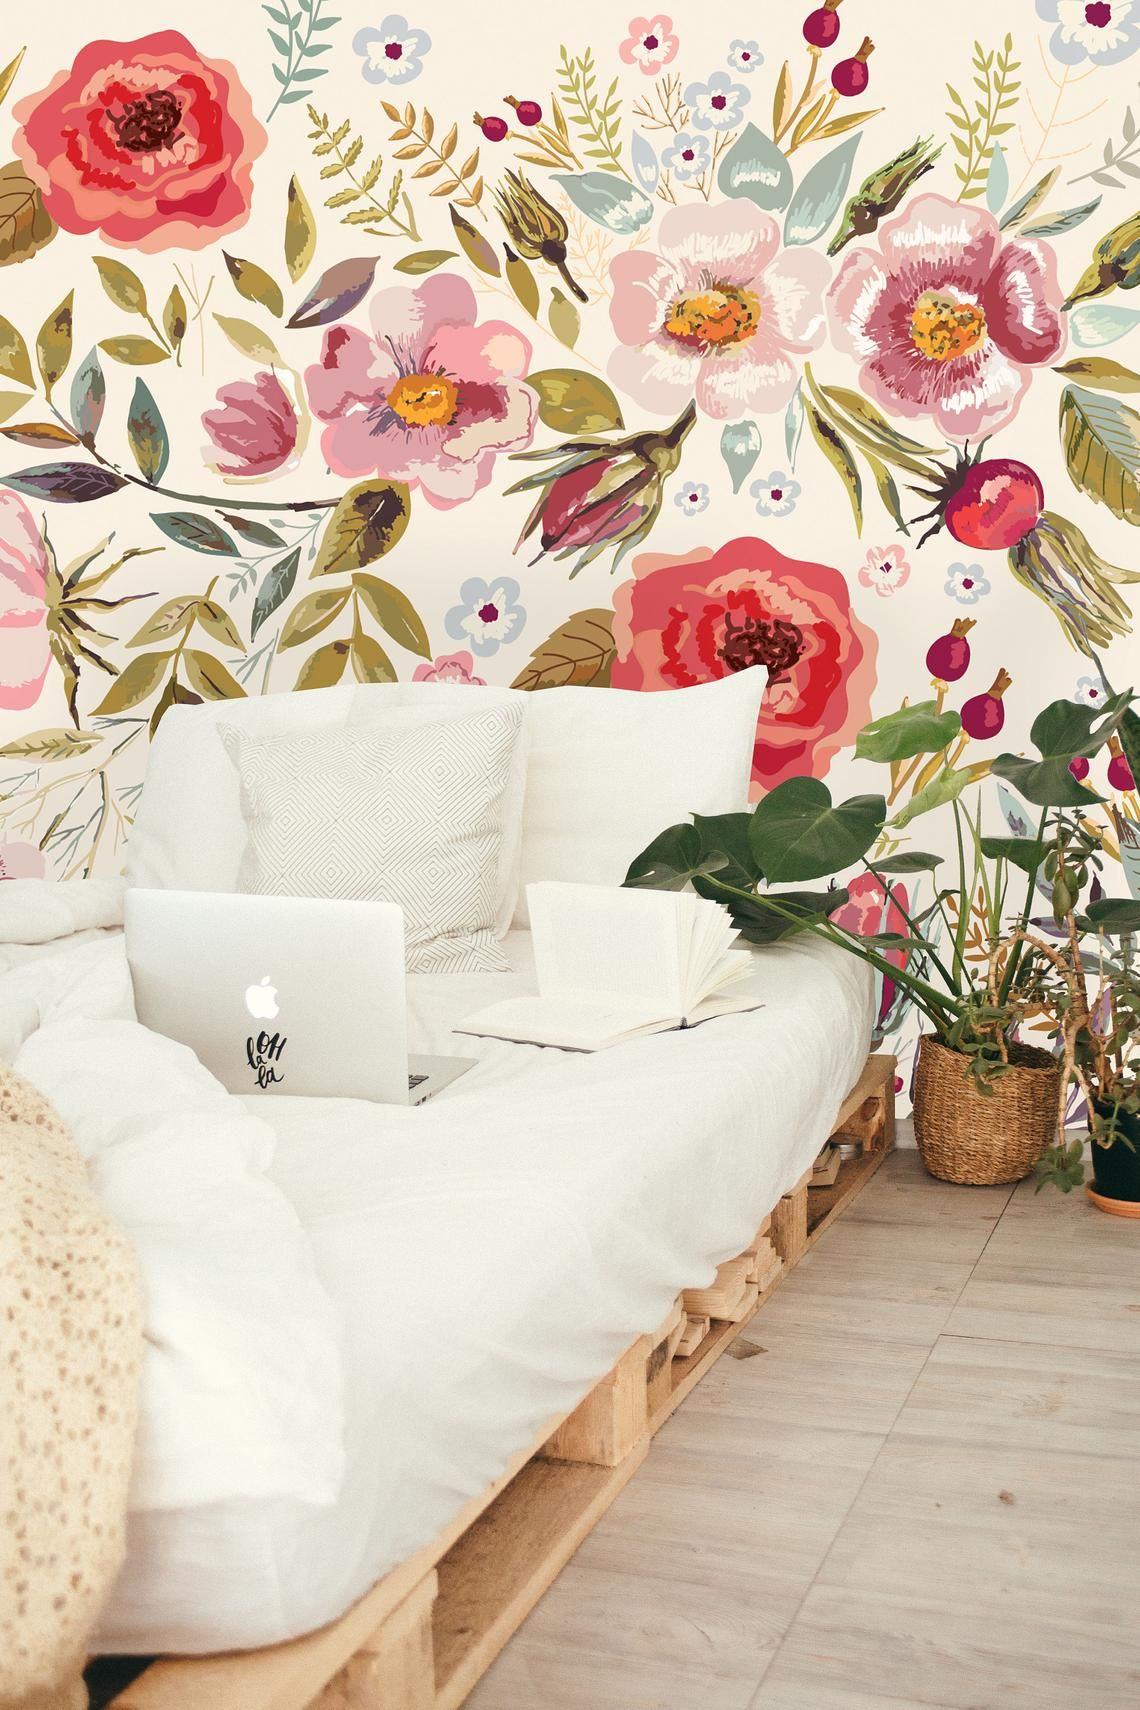 Removable Wallpaper Vintage Berries And Flowers Peel Stick